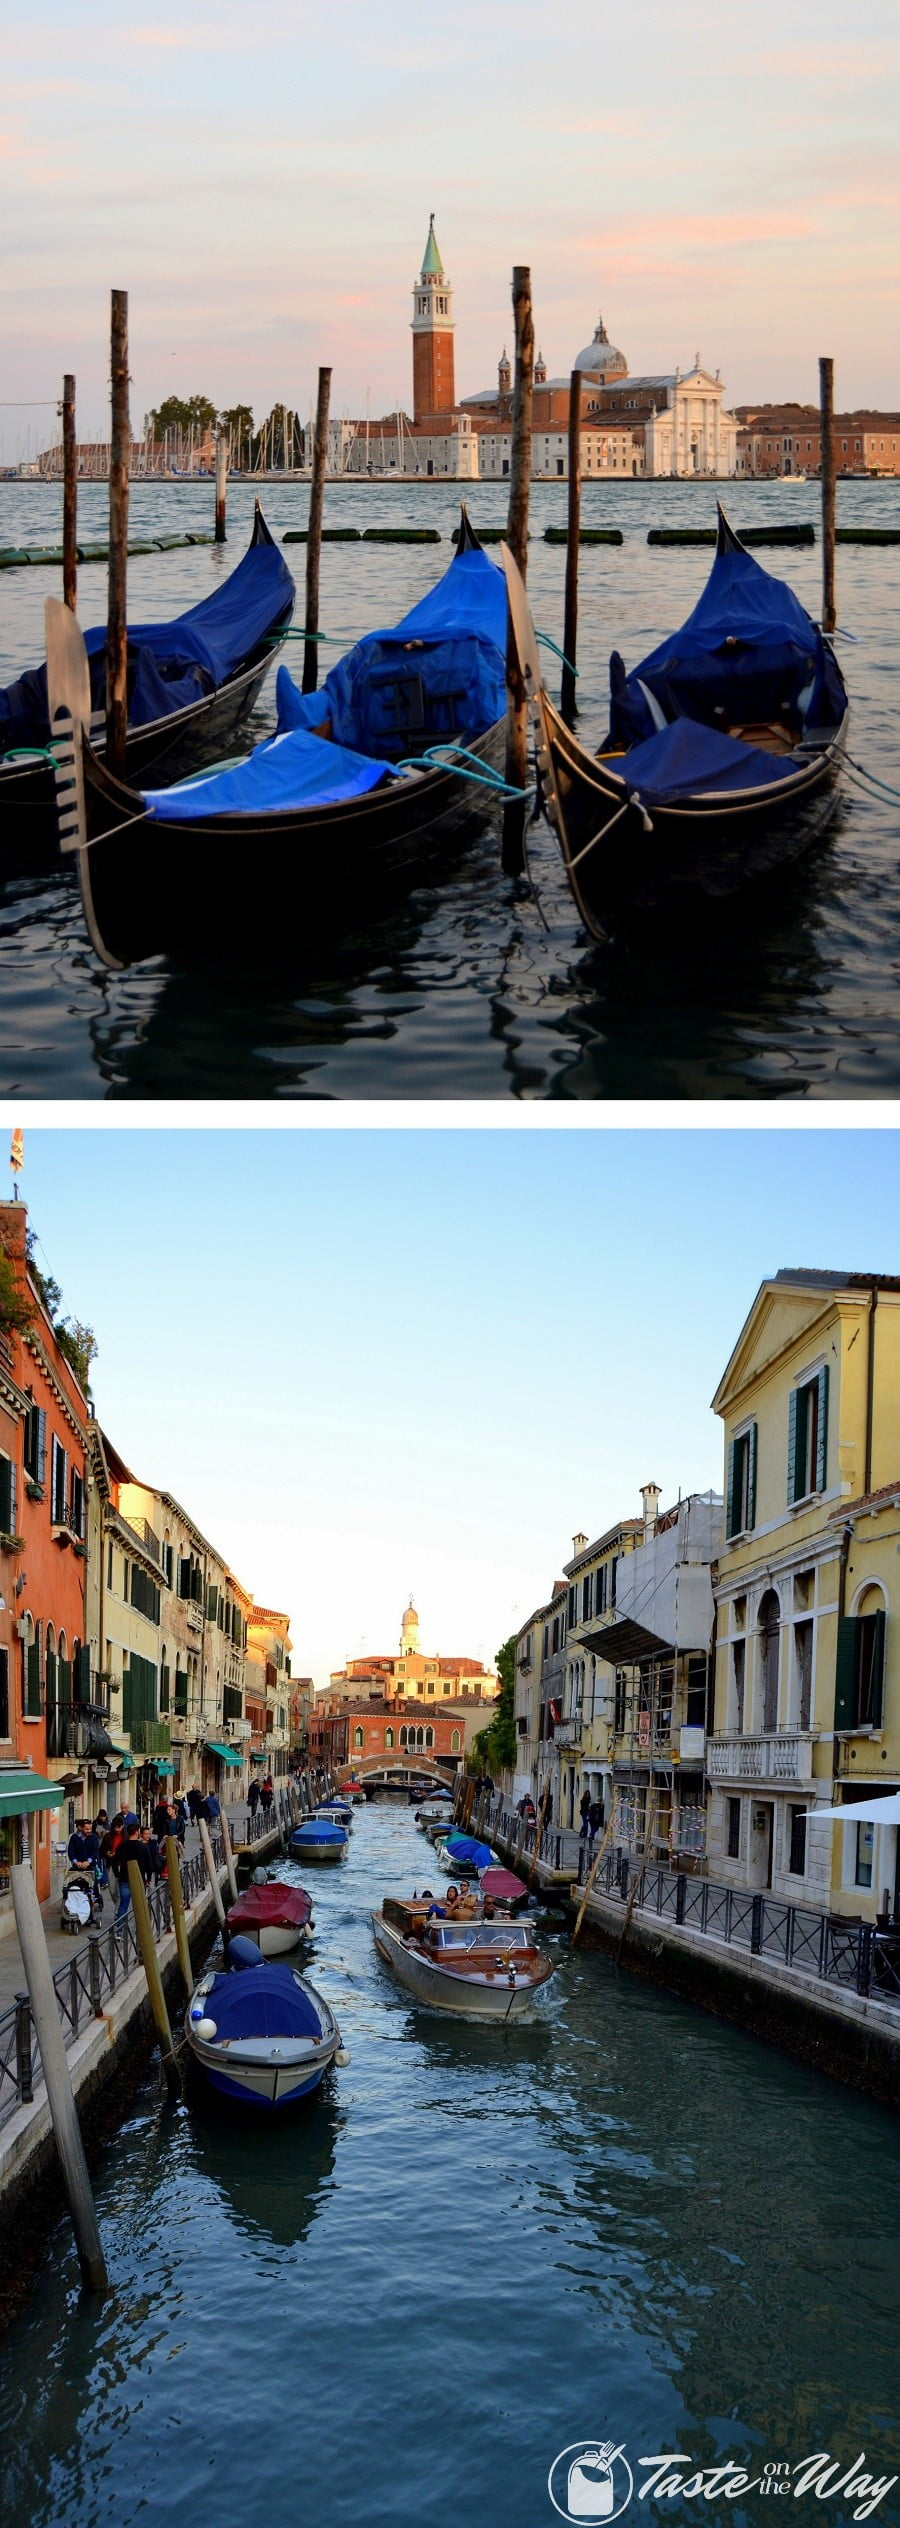 Check out these awesome pictures of gondolas and boats in #Venice #travel #photography @tasteontheway